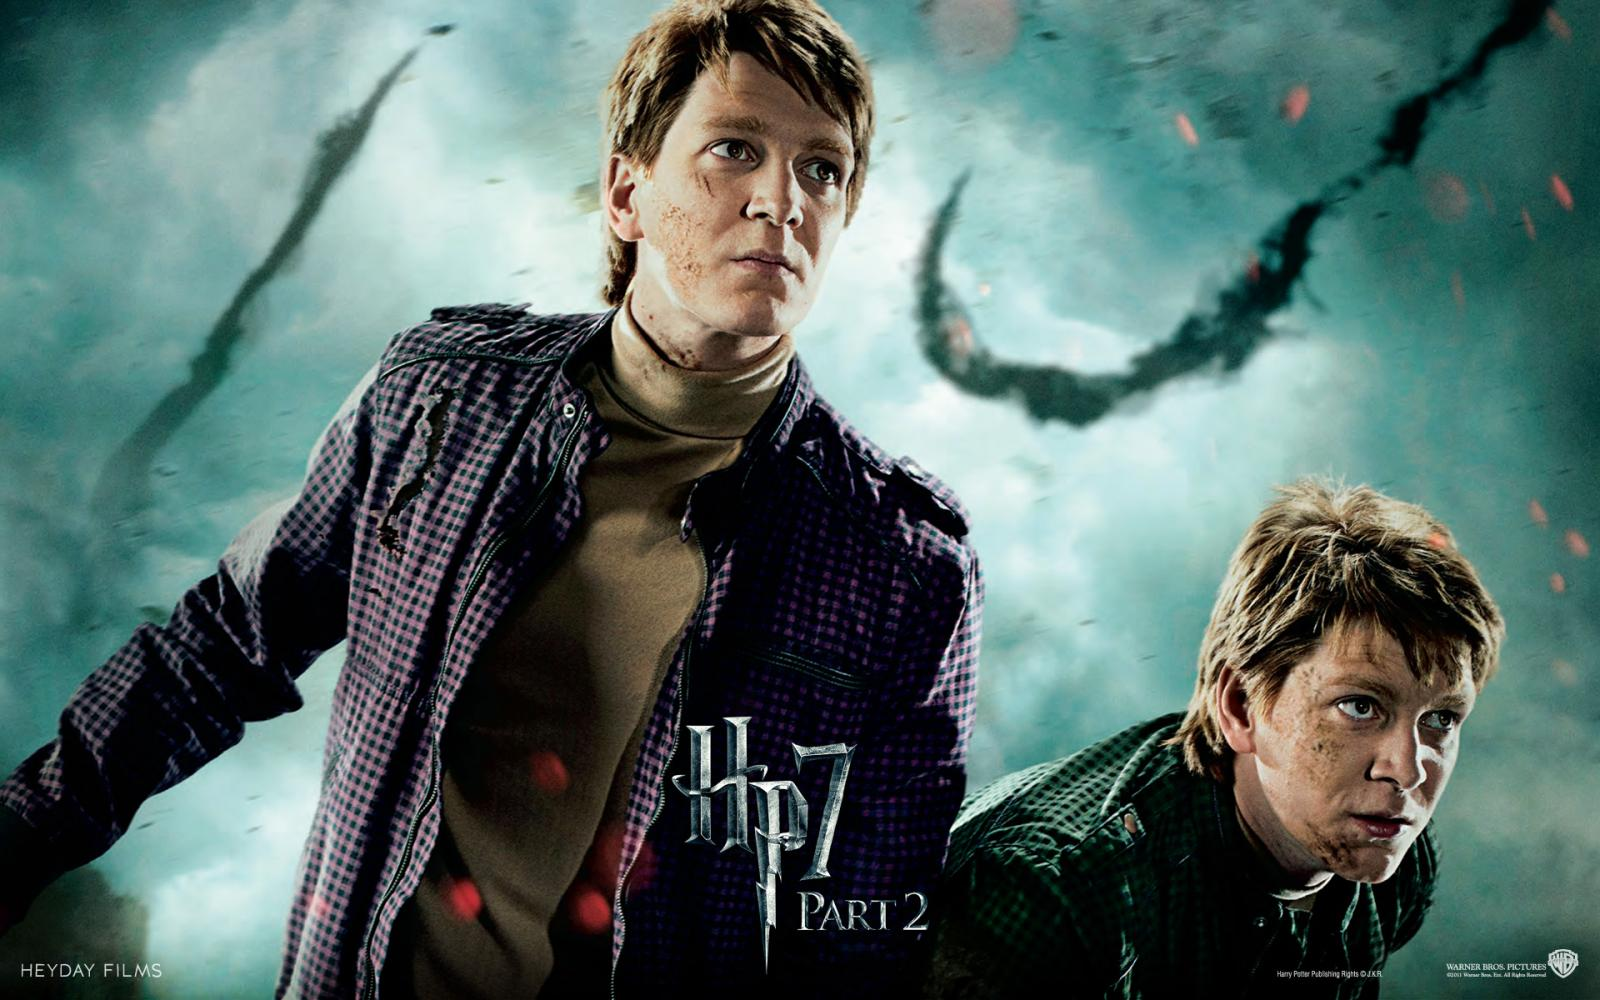 Wallpaper Harry Potter HP7 Weasley Twins - James and Oliver Phelps